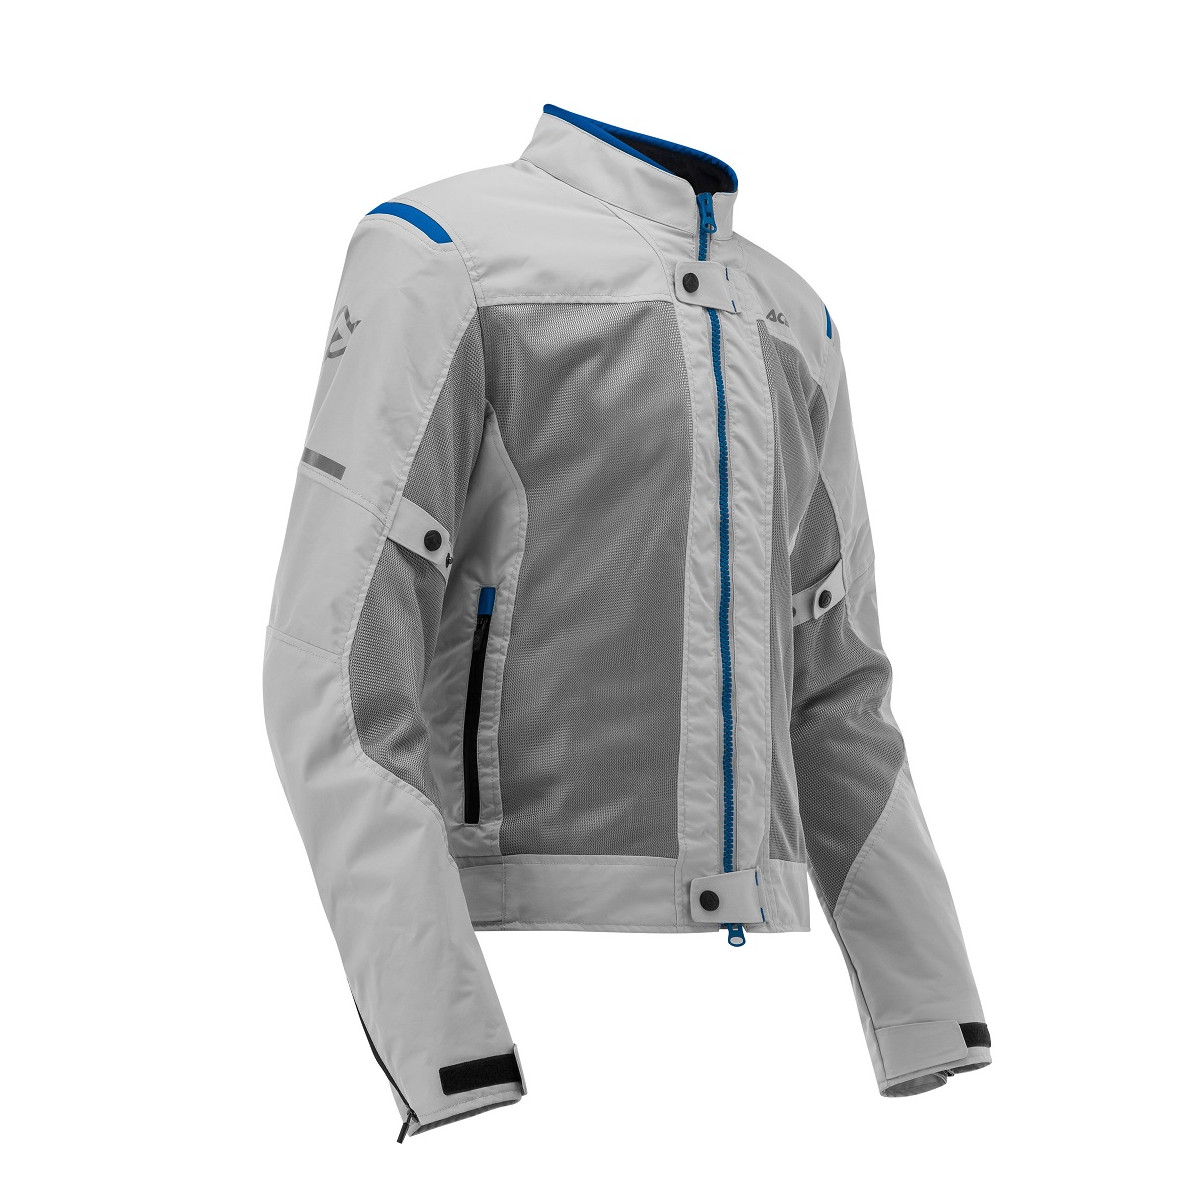 ACERBIS - RAMSEY MY VENTED 2.0 JACKET - GREY BLUE